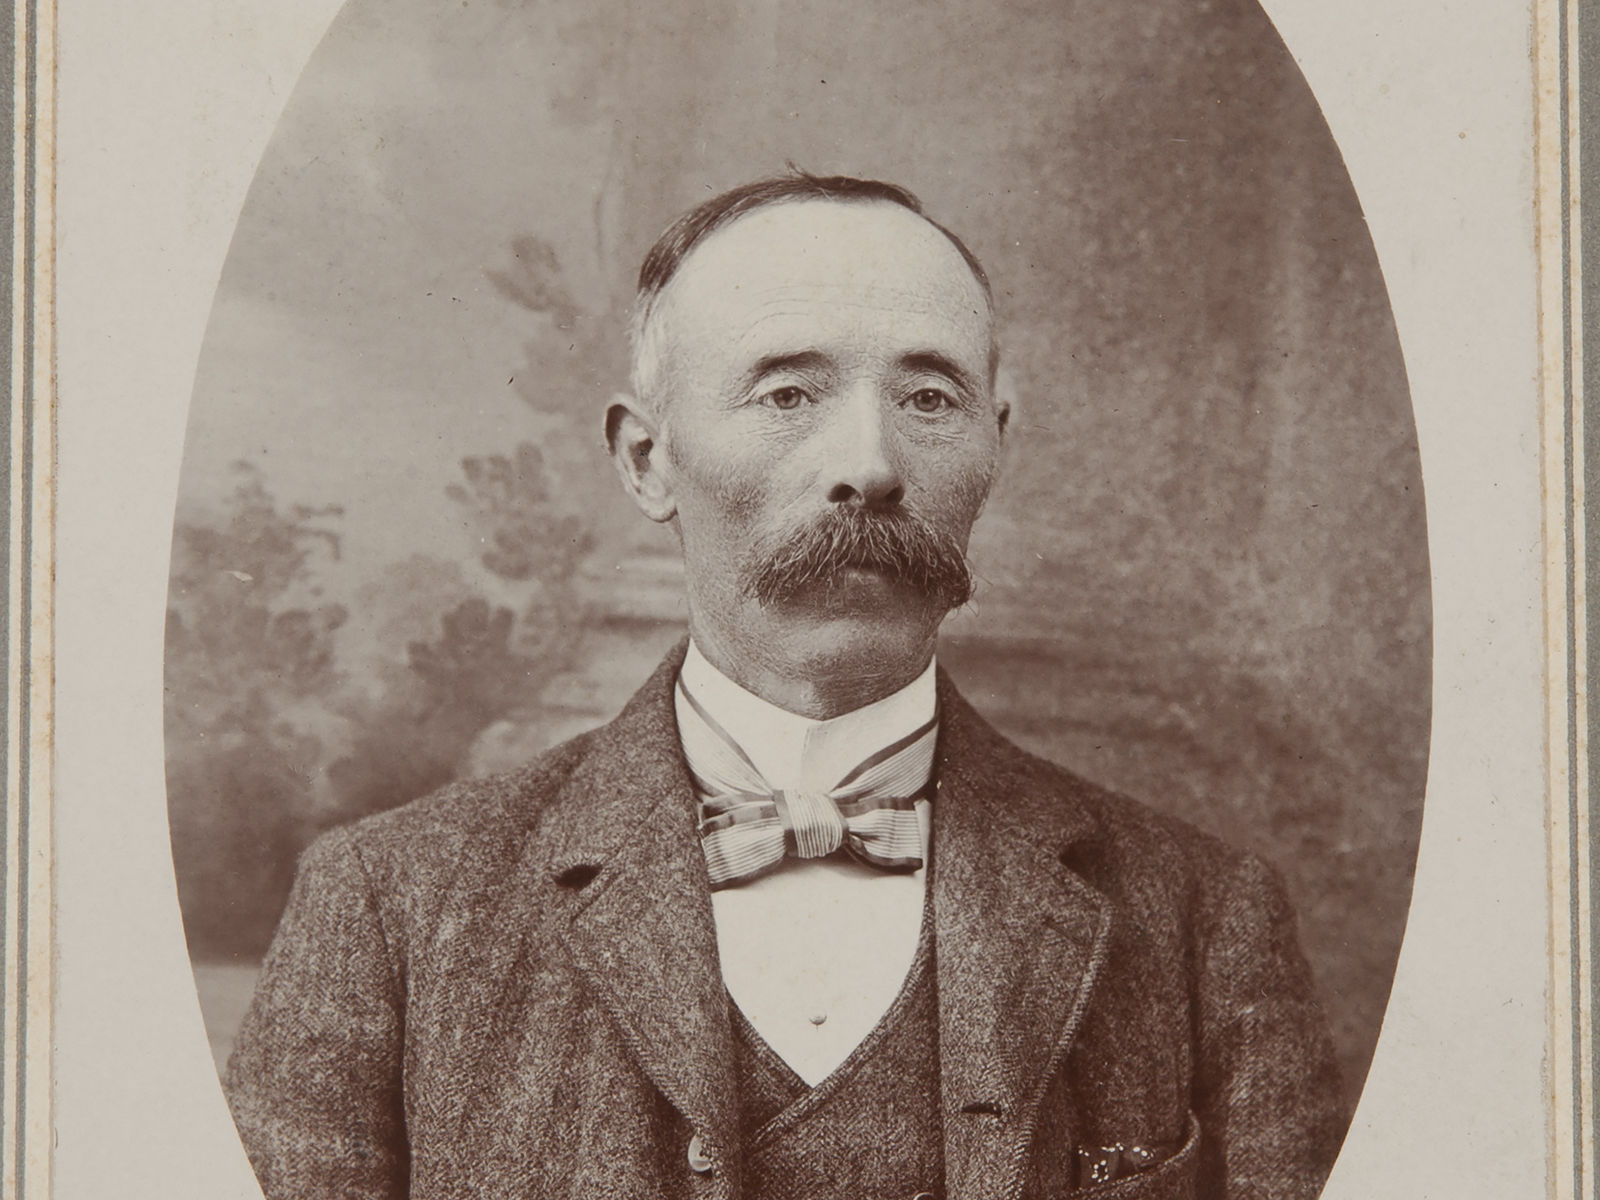 Antique Vintage Cabinet Photo of Man with Mustache - Free Shipping